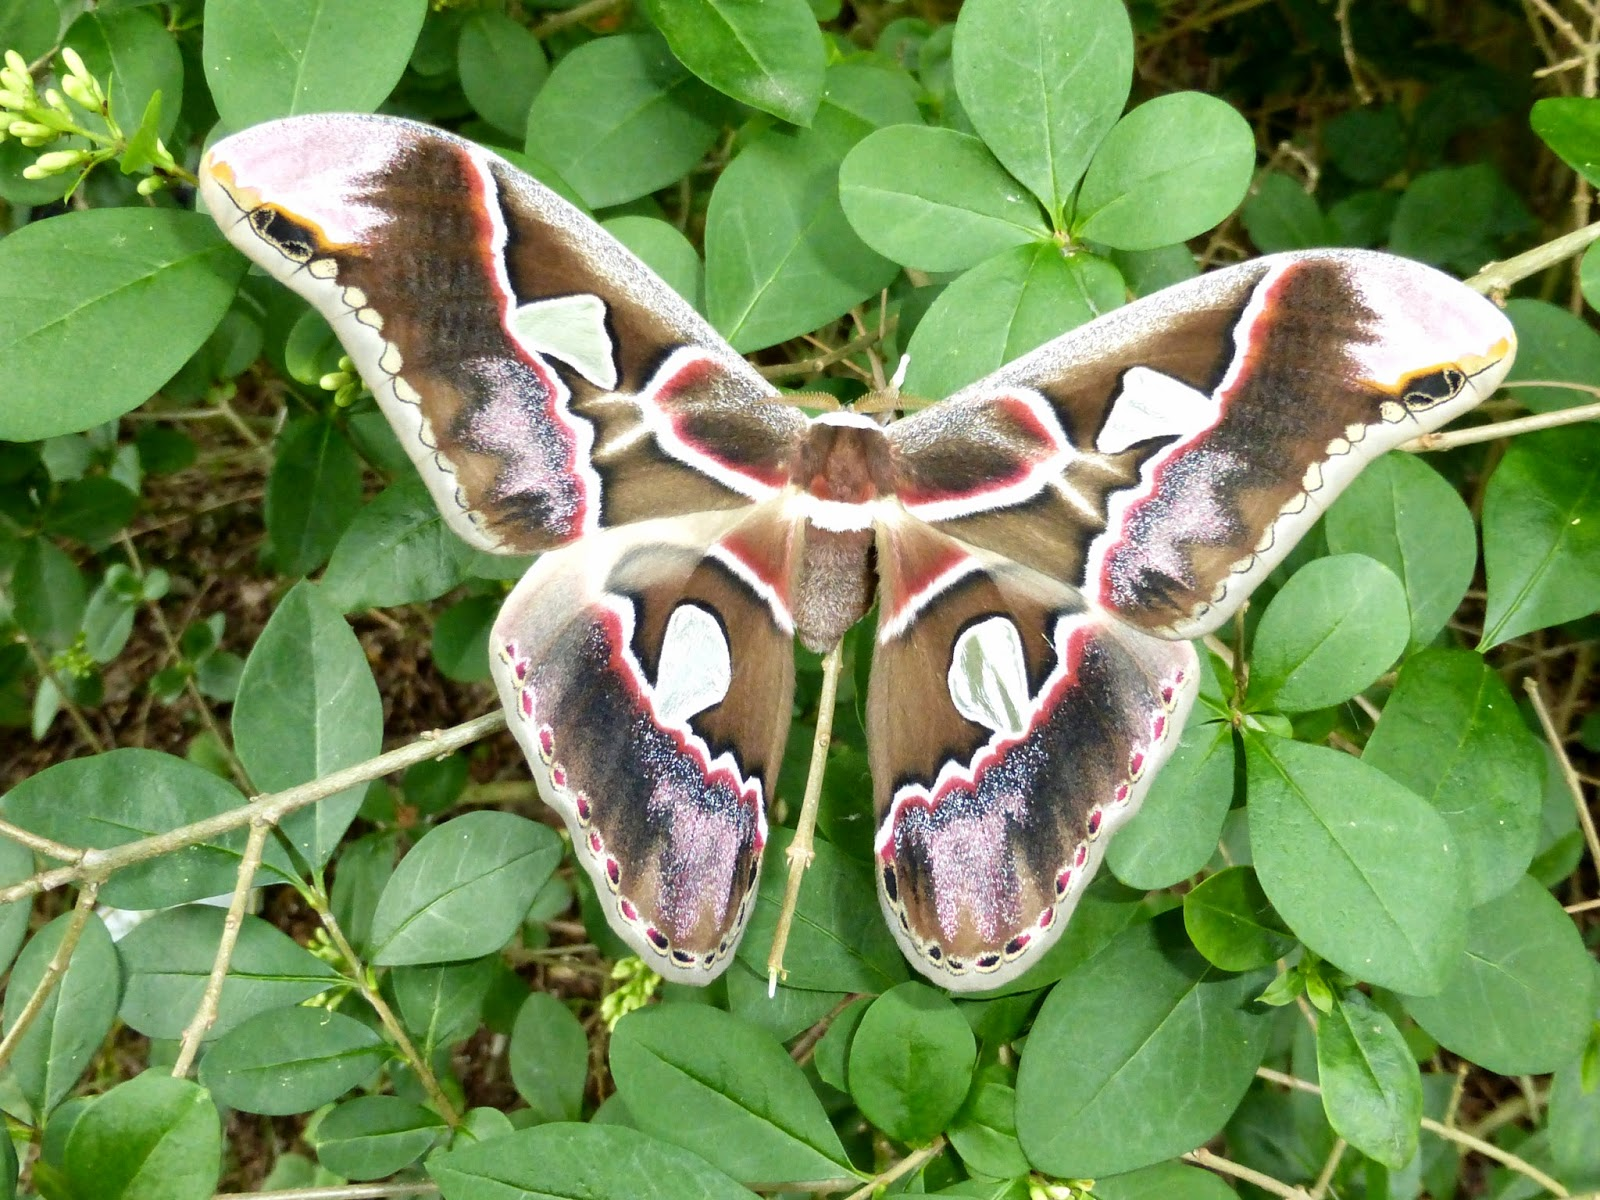 Rothschildia lebeau female